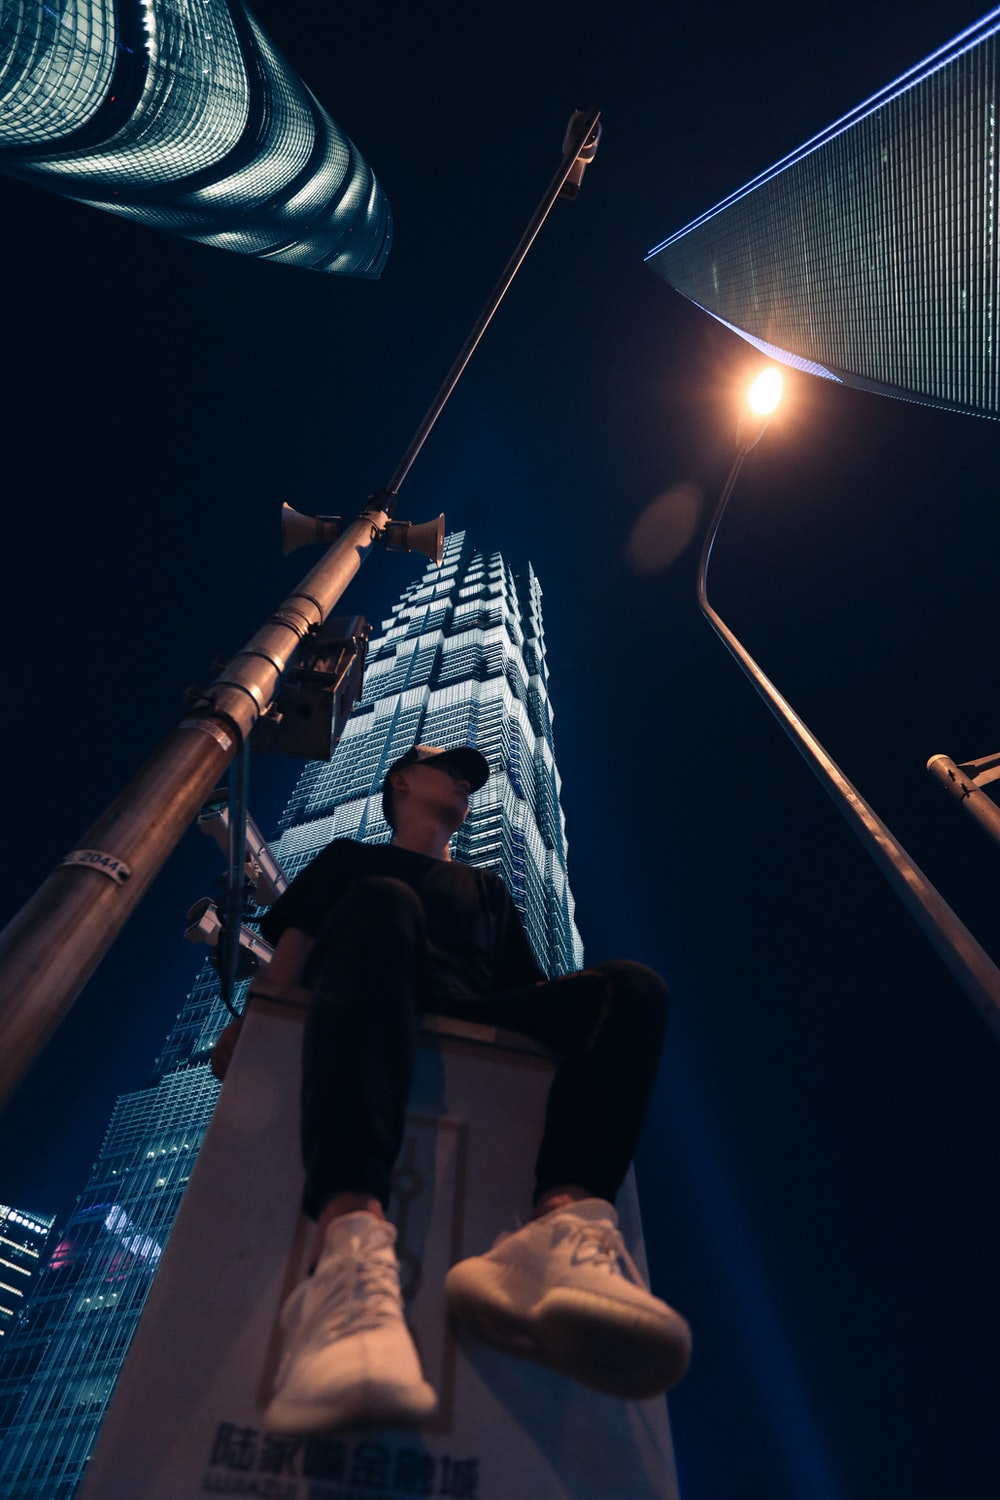 man sitting at the city during night